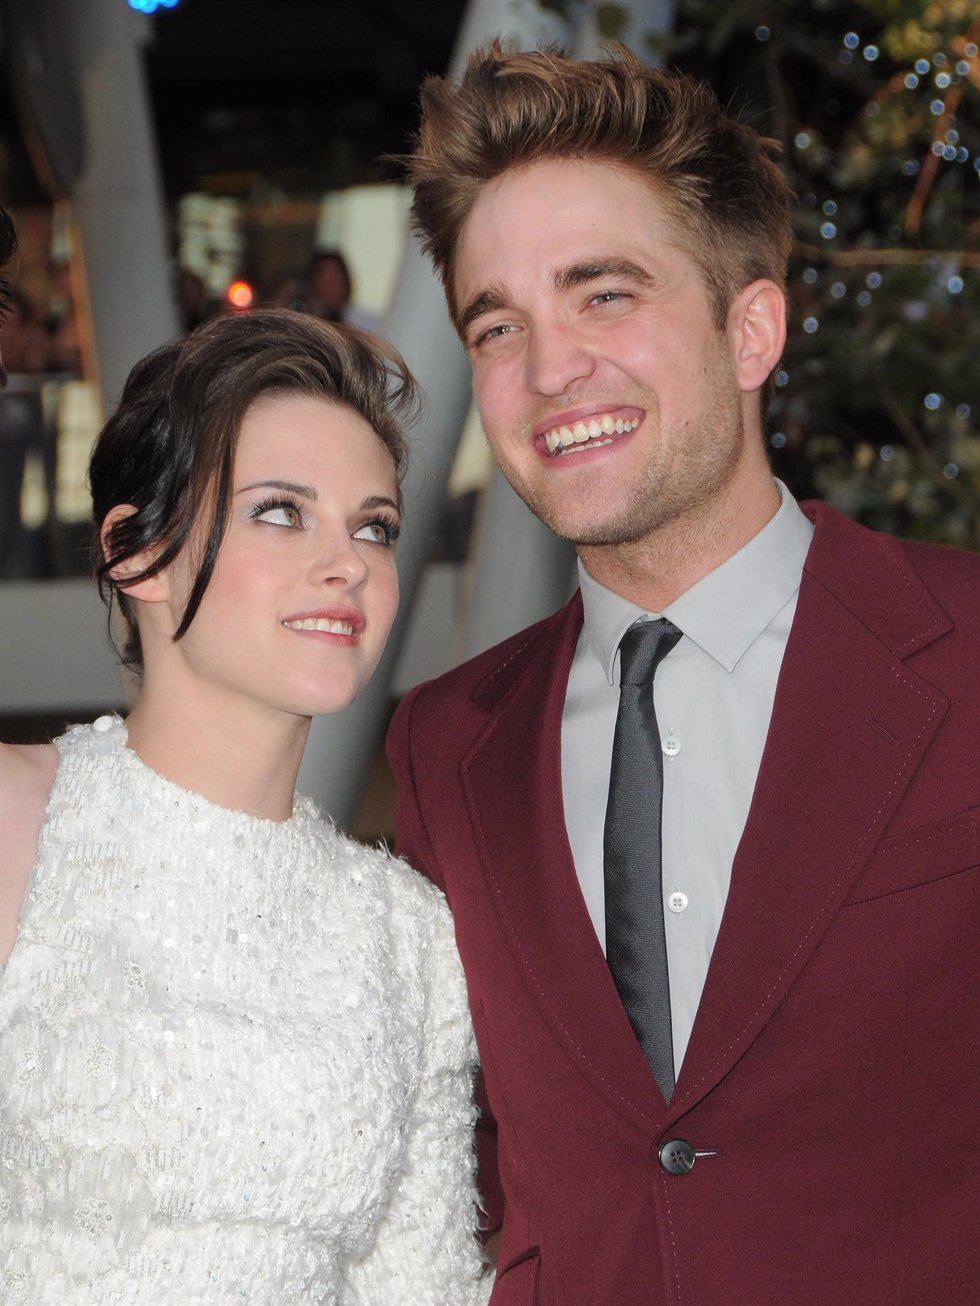 Kristen Stewart y Robert Pattinson en la premiére de 'Eclipse' en Los Angeles